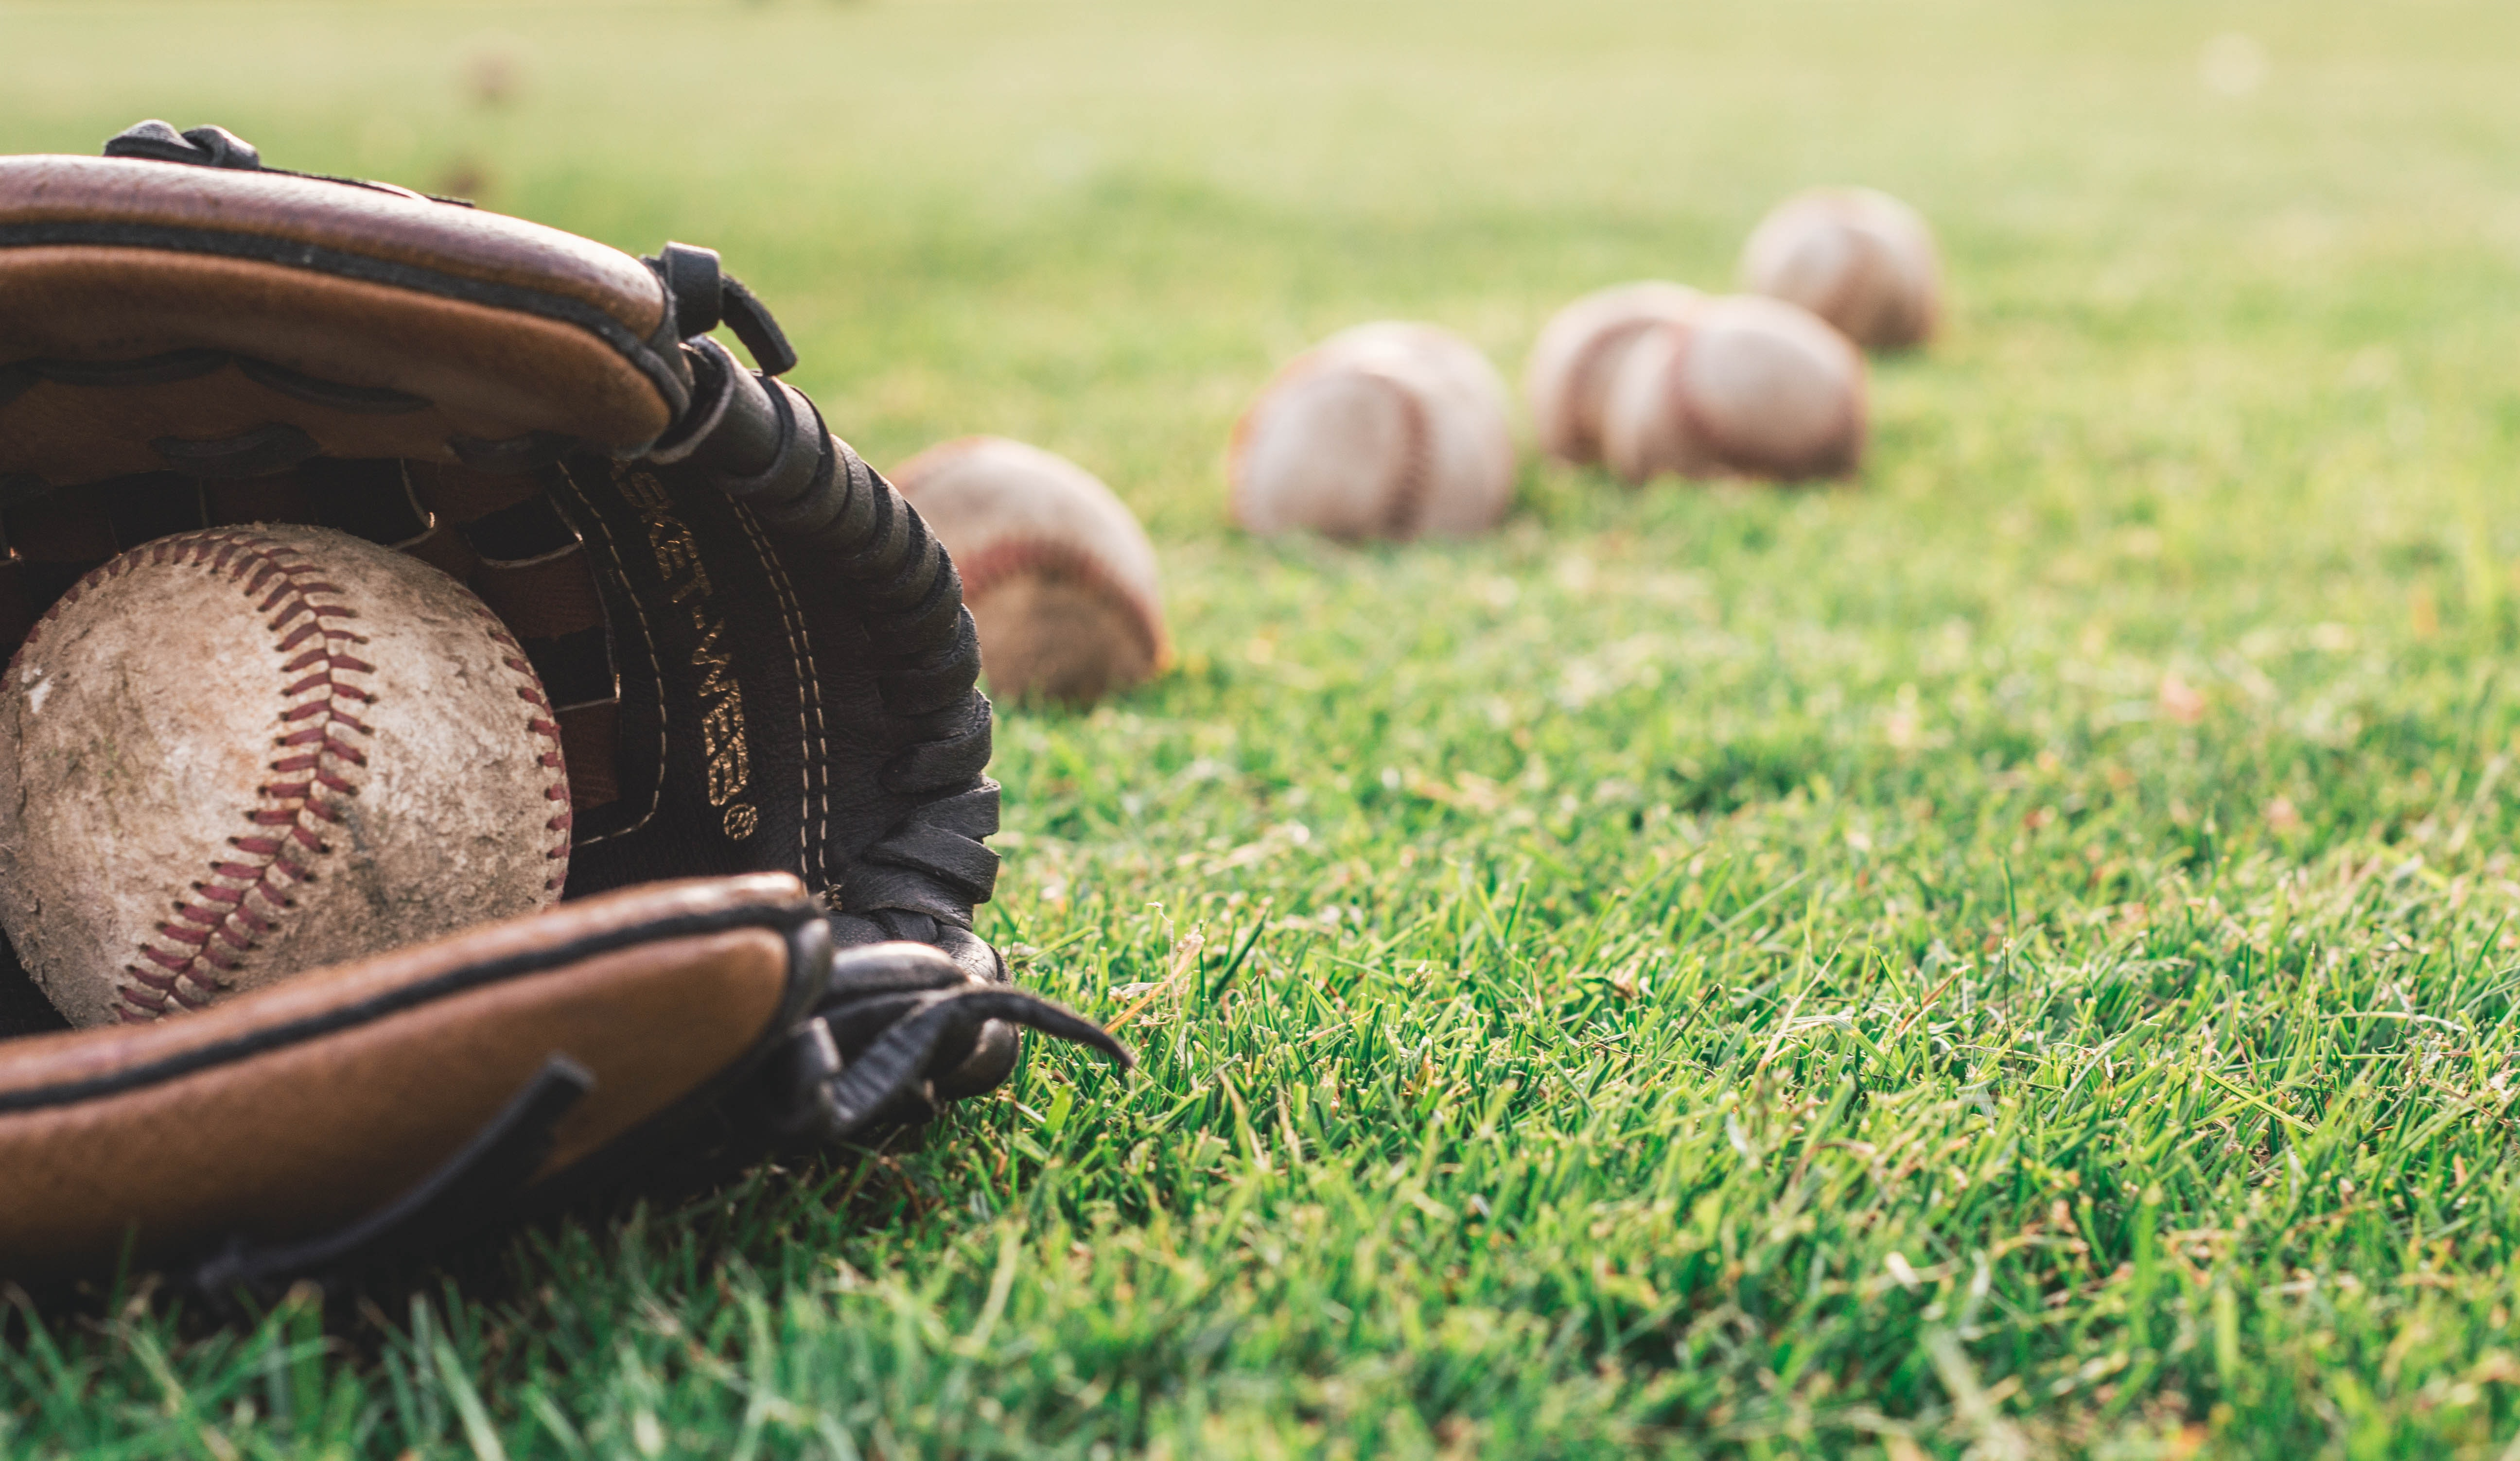 Enjoy baseball at San Leandro Ball Park